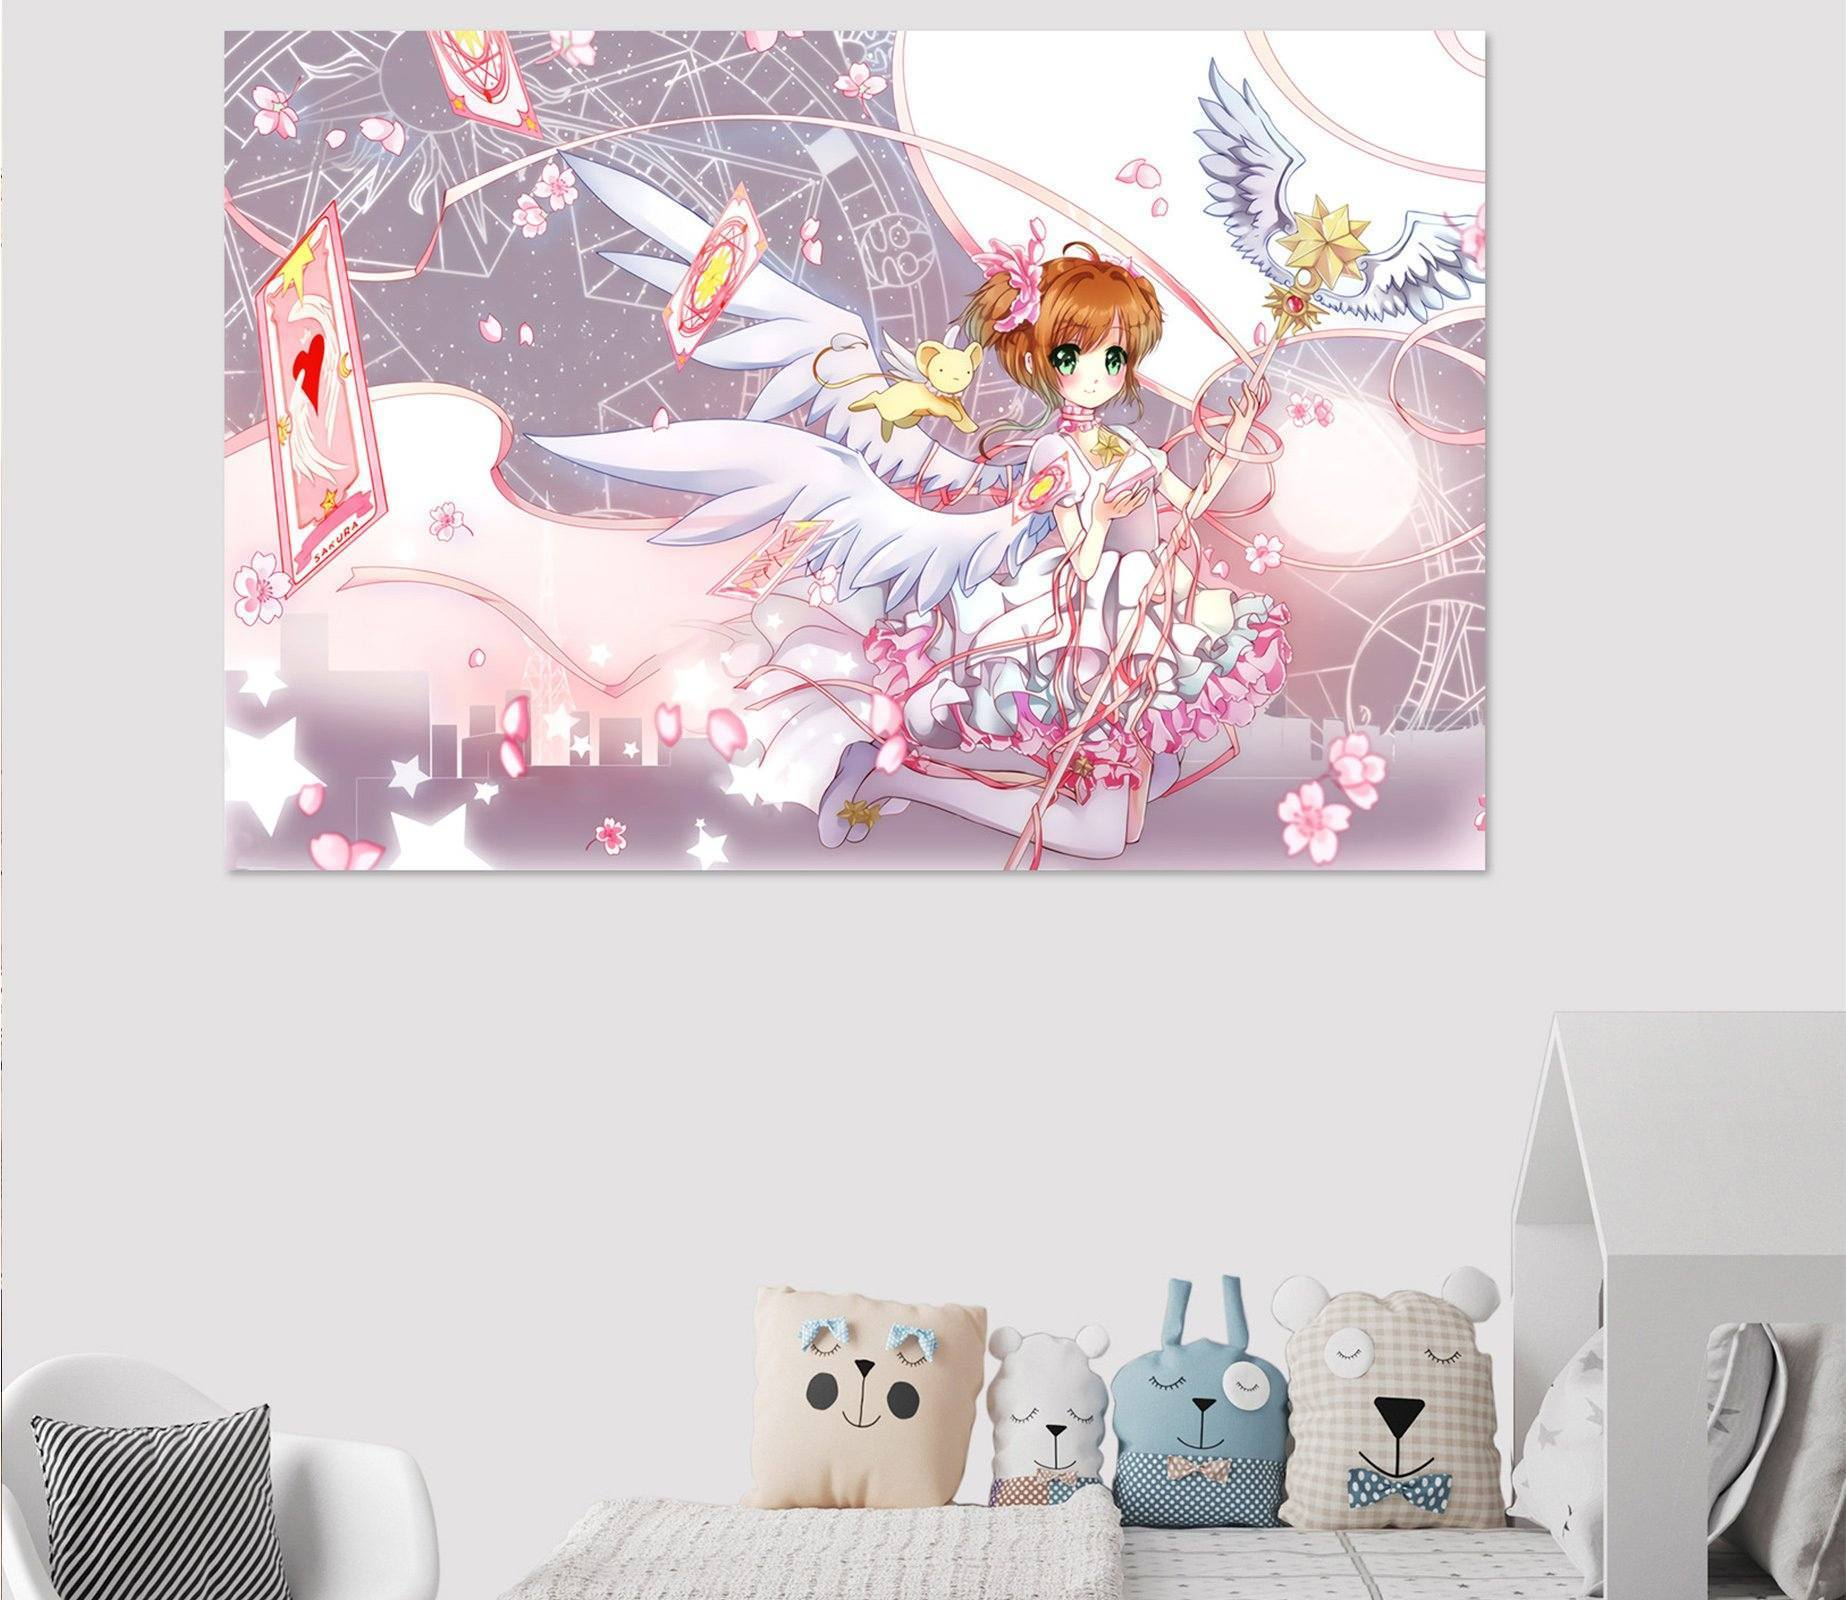 3D Cardcaptor Sakura 834 Anime Wall Stickers Wallpaper AJ Wallpaper 2